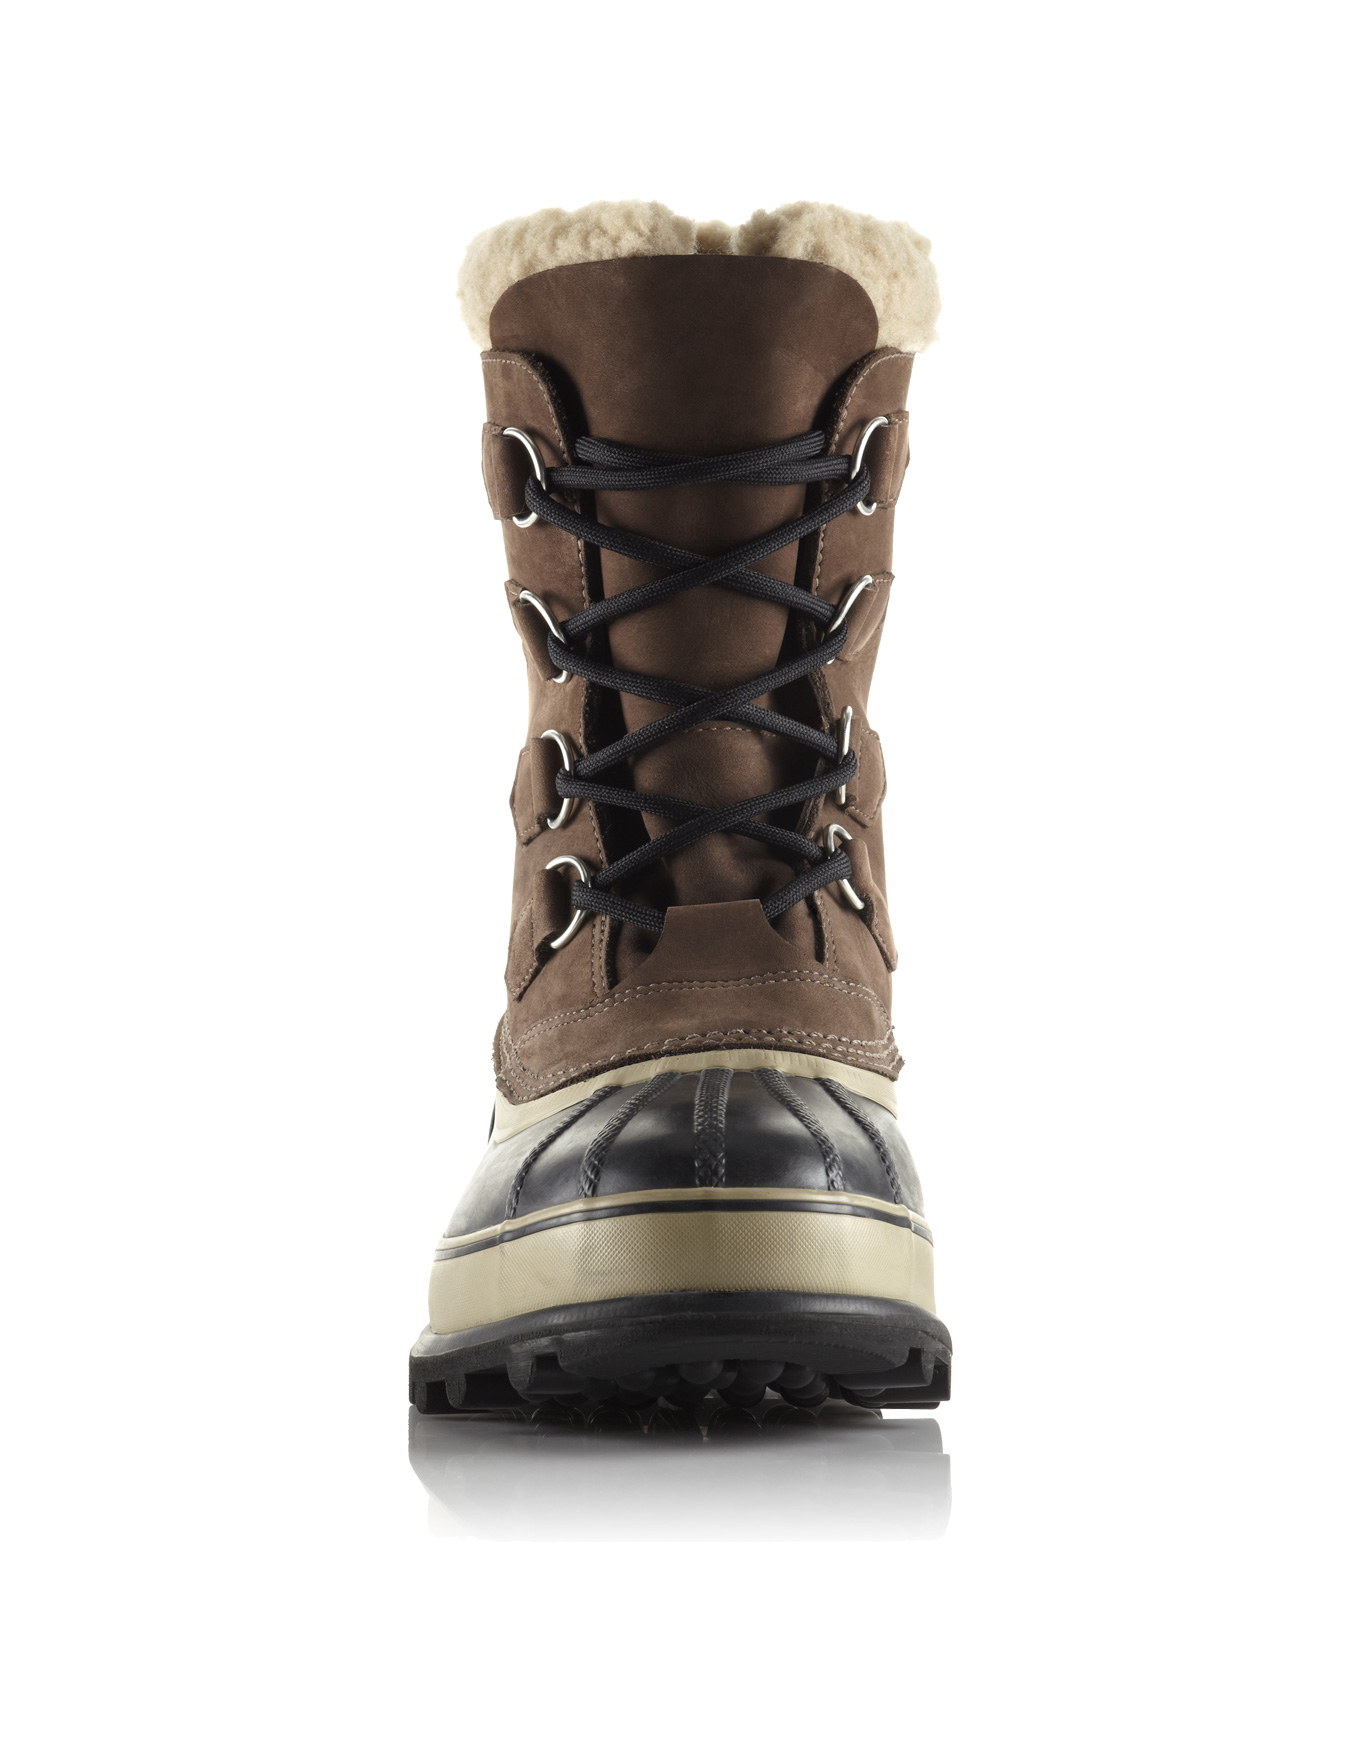 caribou men Men's sorel caribou with free shipping & exchanges the sorel caribou boot for men is a true essential for your winter boot.